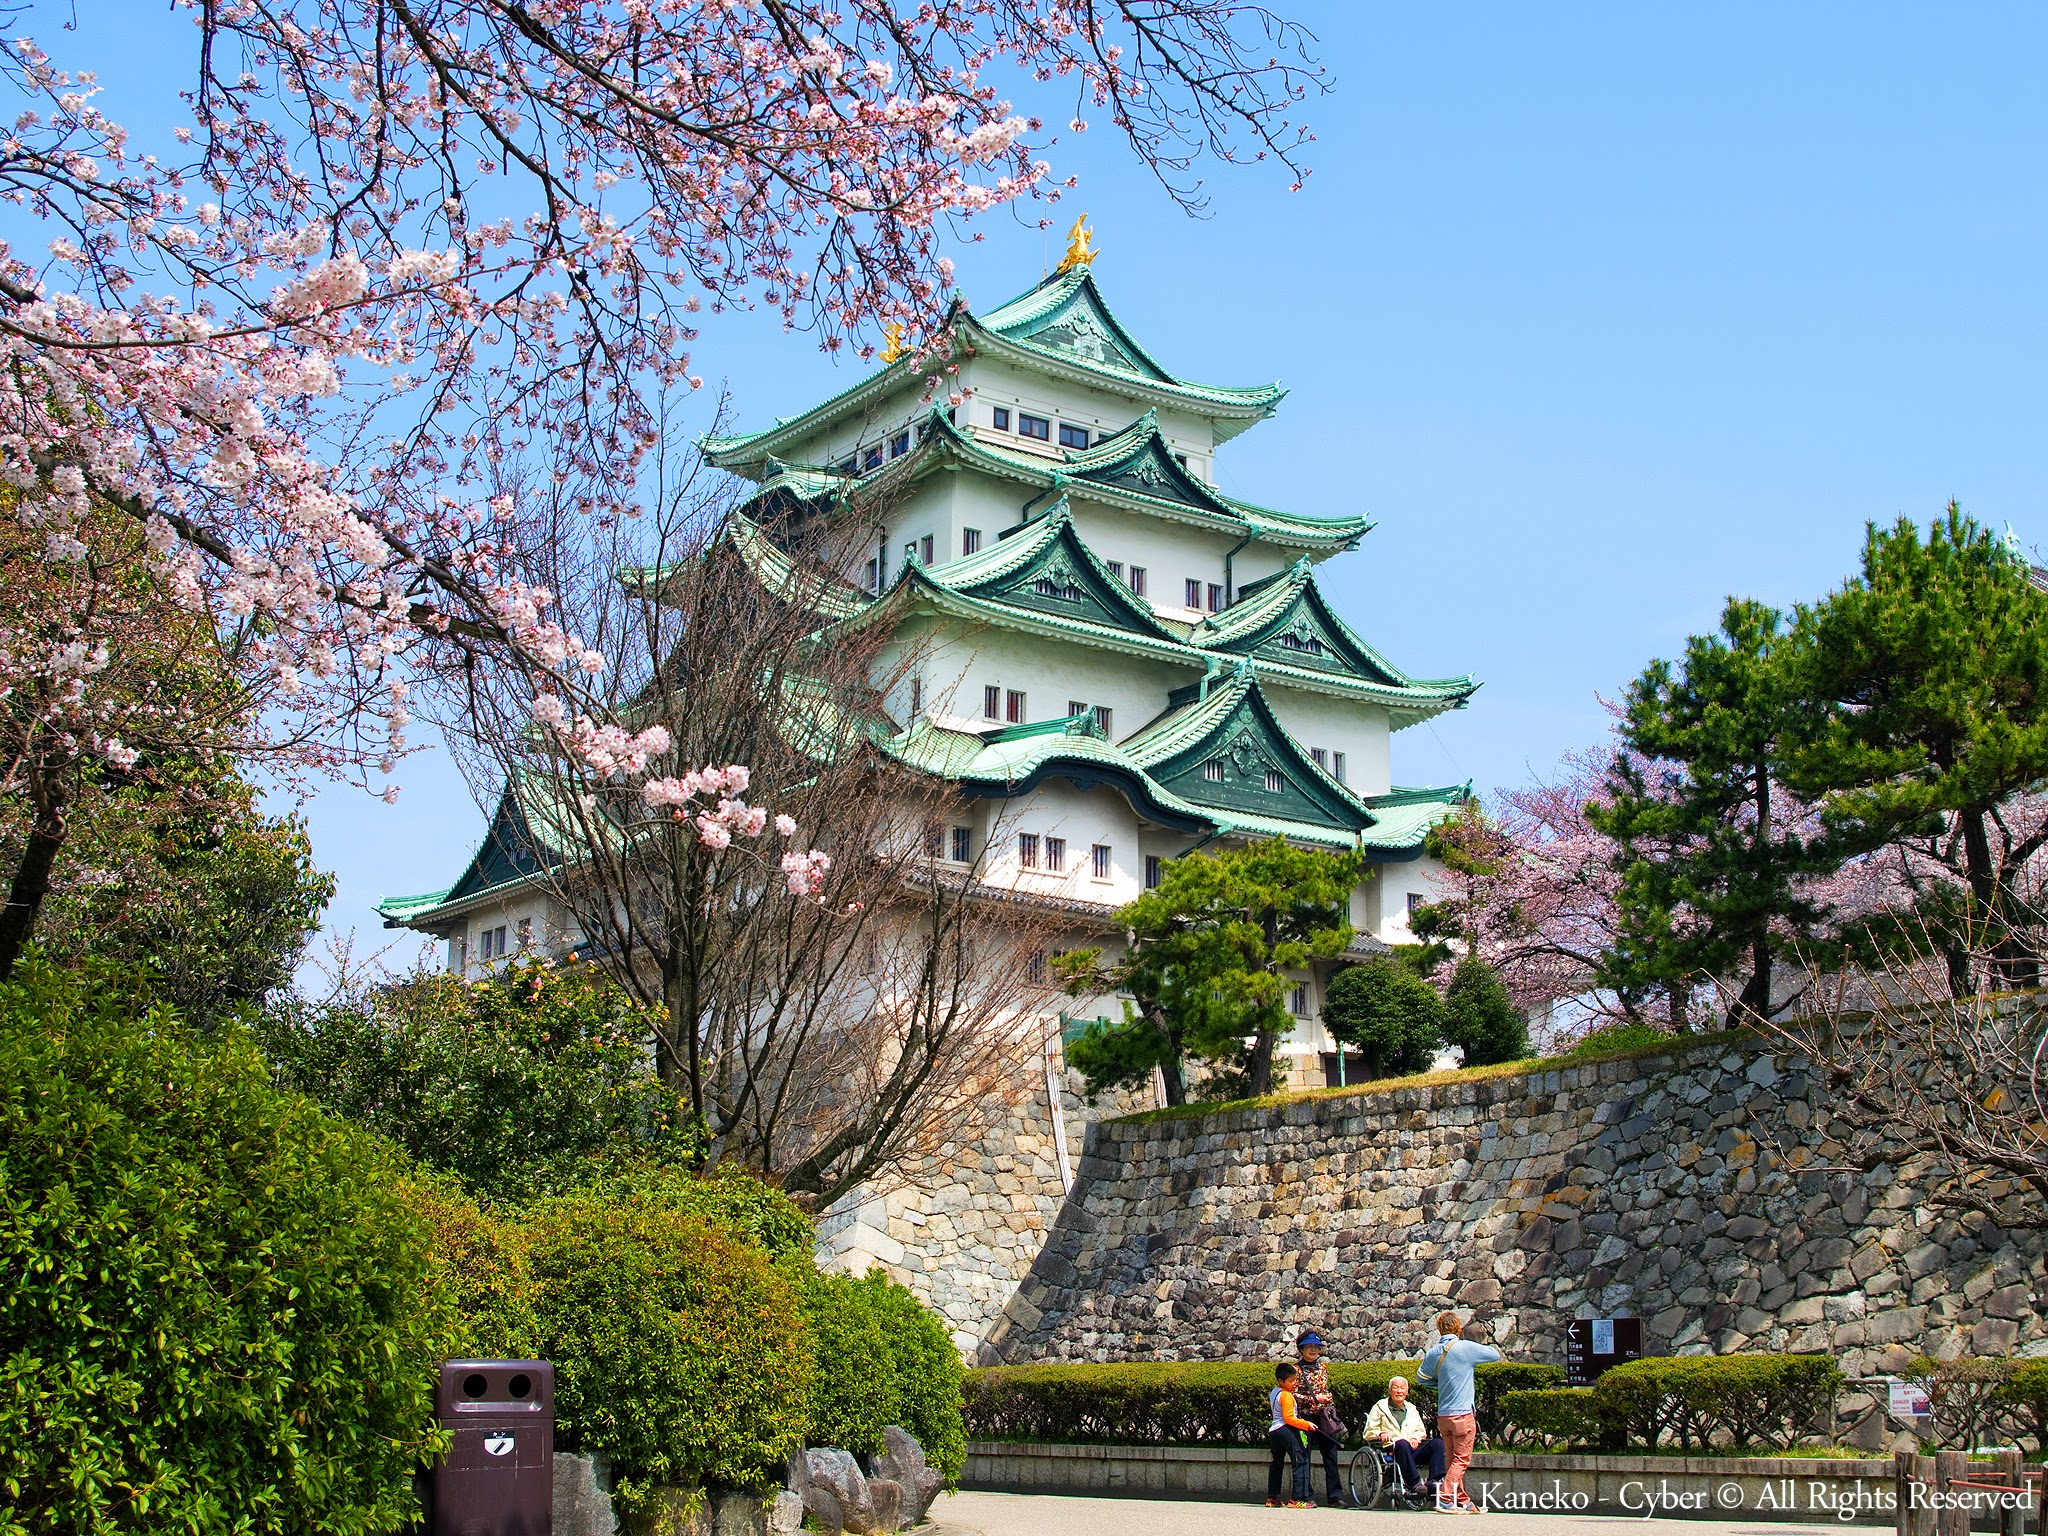 nagoya_Castle_with_Cherry_blossoms